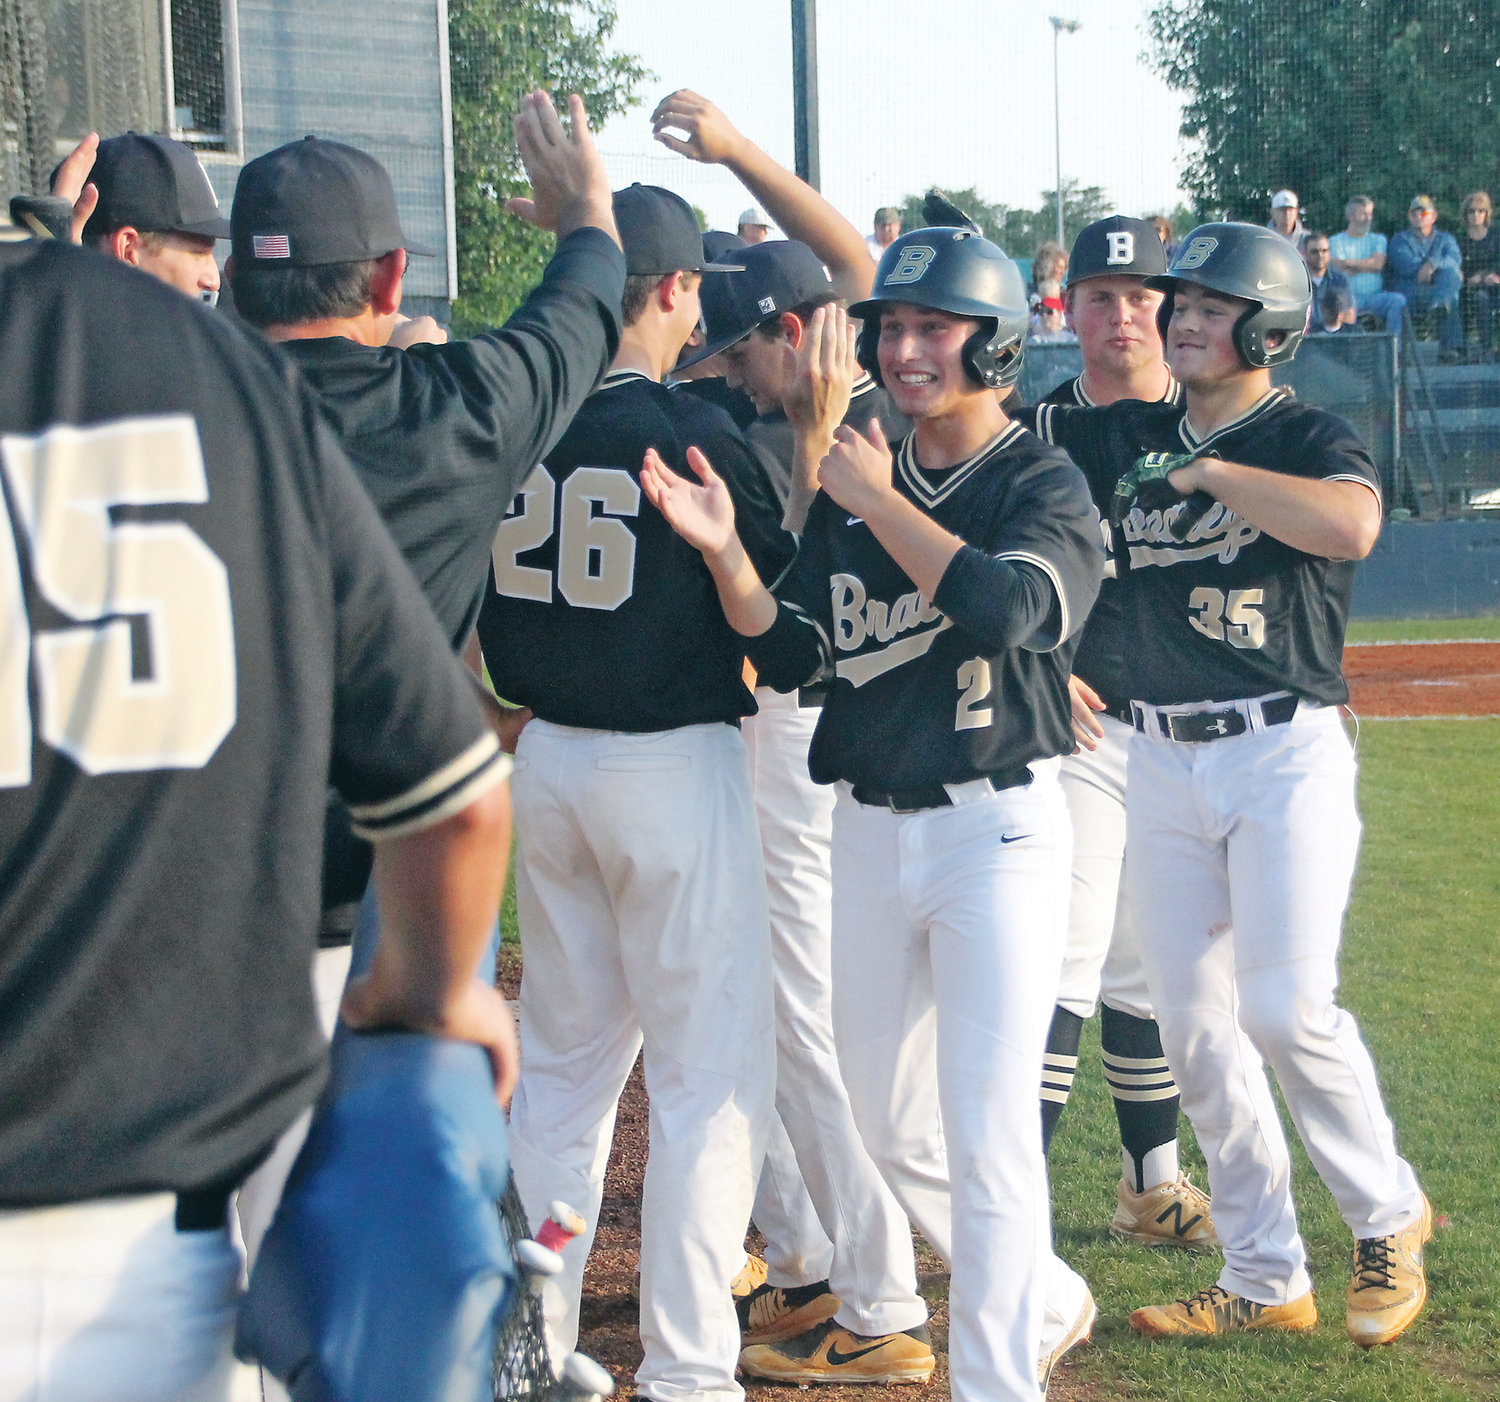 BRADLEY CENTRAL junior Riley Black (35) is greeted by teammates after blasting a two-run homer which also scored Caden Sherlin (2) in the second inning of Wednesday evening's 7-3 victory at Soddy-Daisy to claim the Region 3-AAA championship.